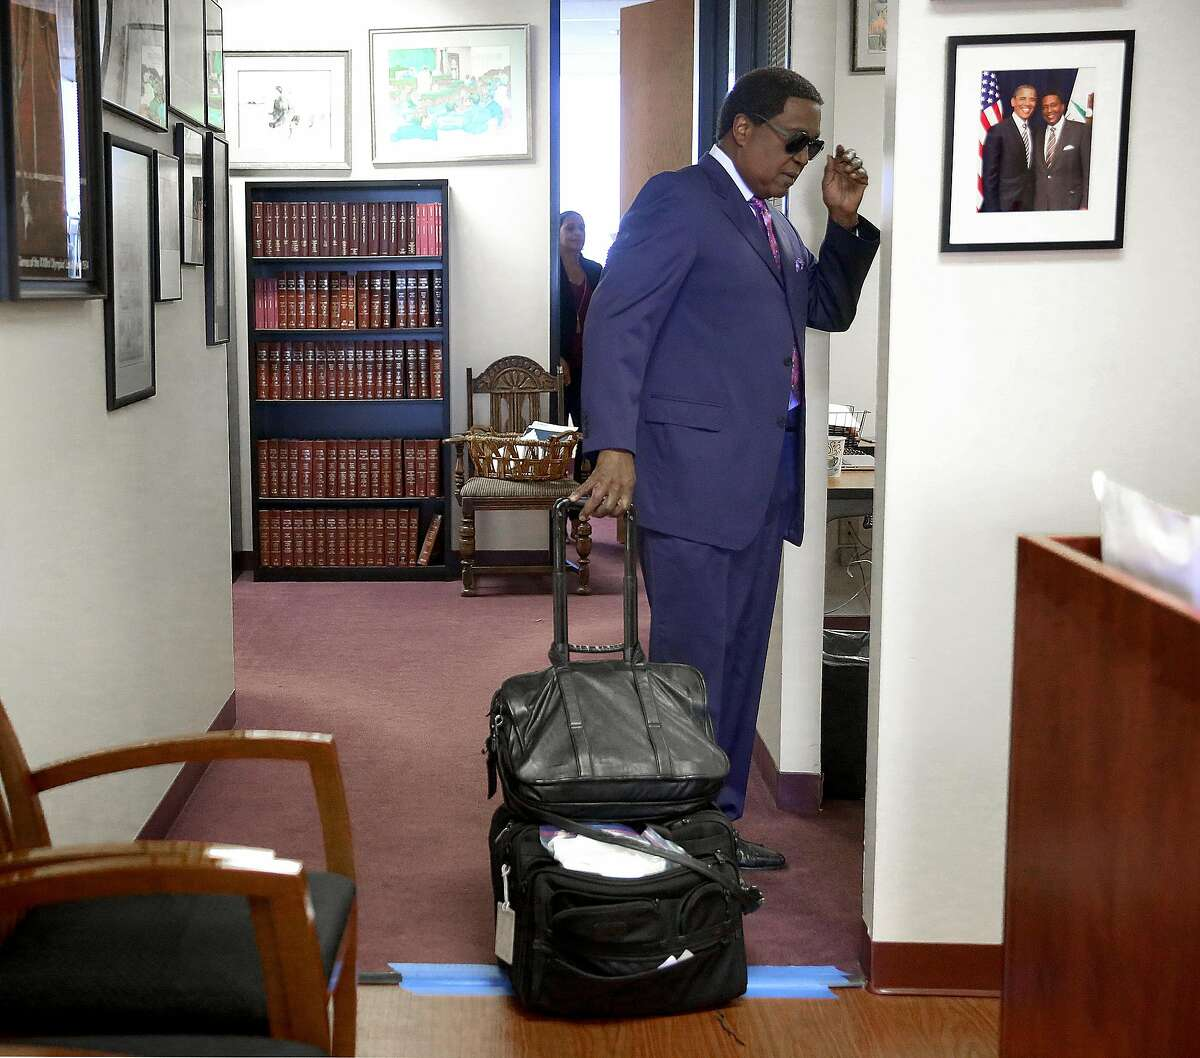 Civil rights attorney John Burris arrives at his office to get ready for a news conference on the OPD sex scandal on Wednesday, June 15, 2016 in Oakland, Calif.